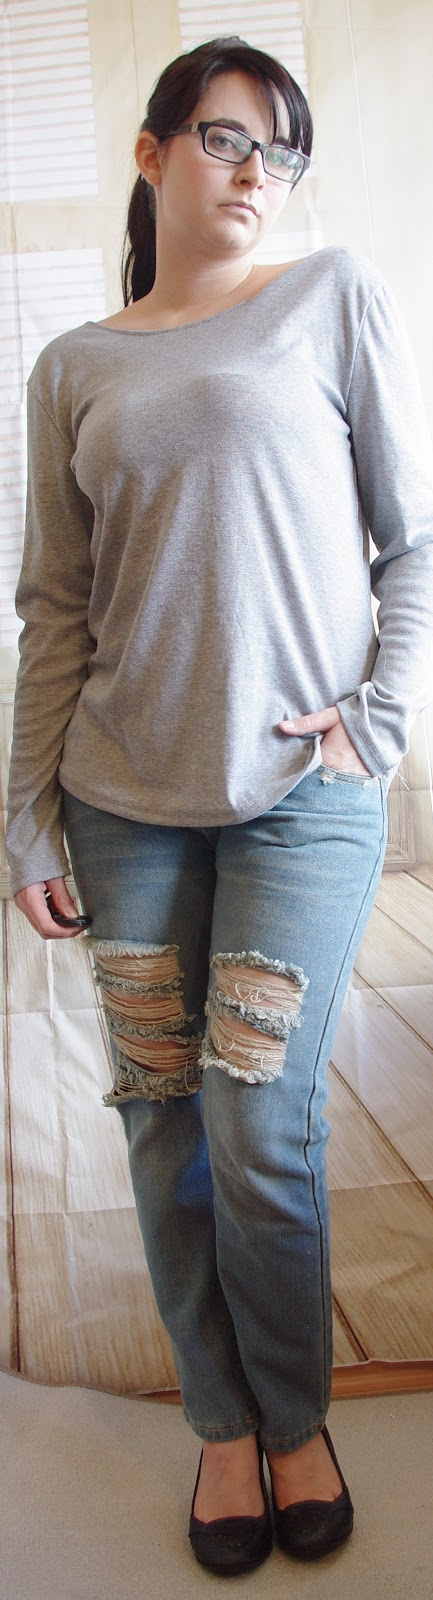 Outfit Ripped Jeans and Backless Top